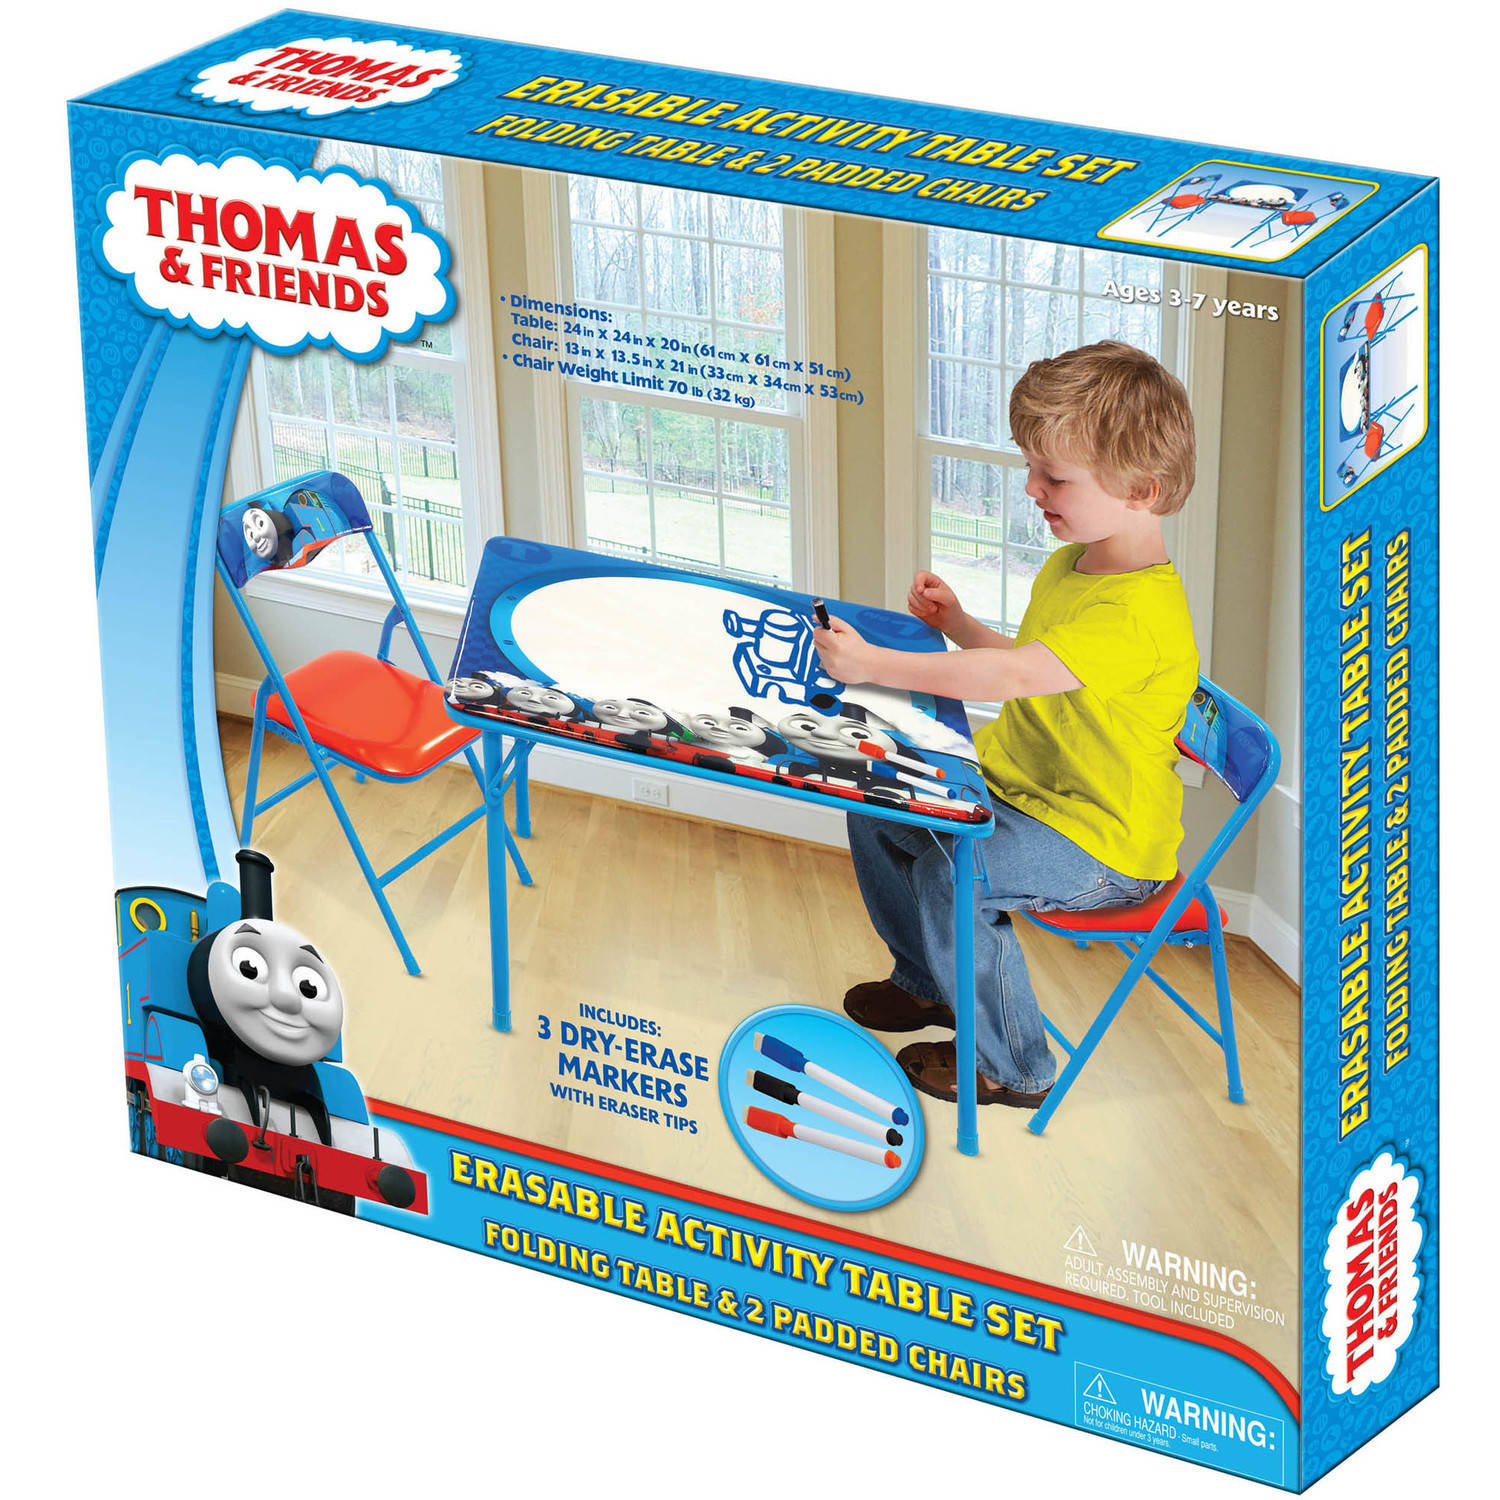 Thomas And Friends Erasable Activity Table Set With 3 Markers